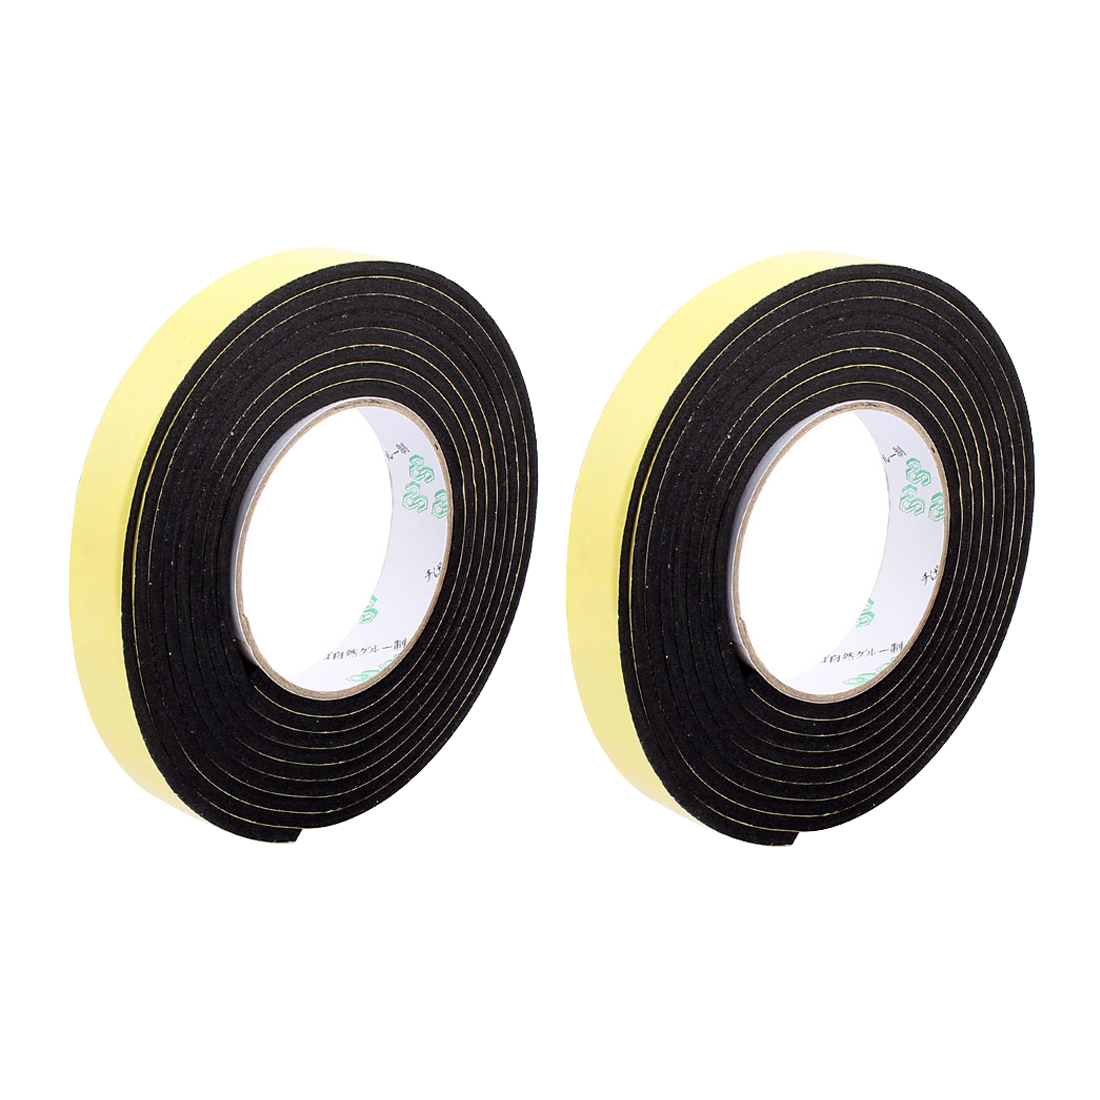 2 Pcs 2CM Width 3 Meters Length 4MM Thick Single Sided Sealing Shockproof Sponge Tape